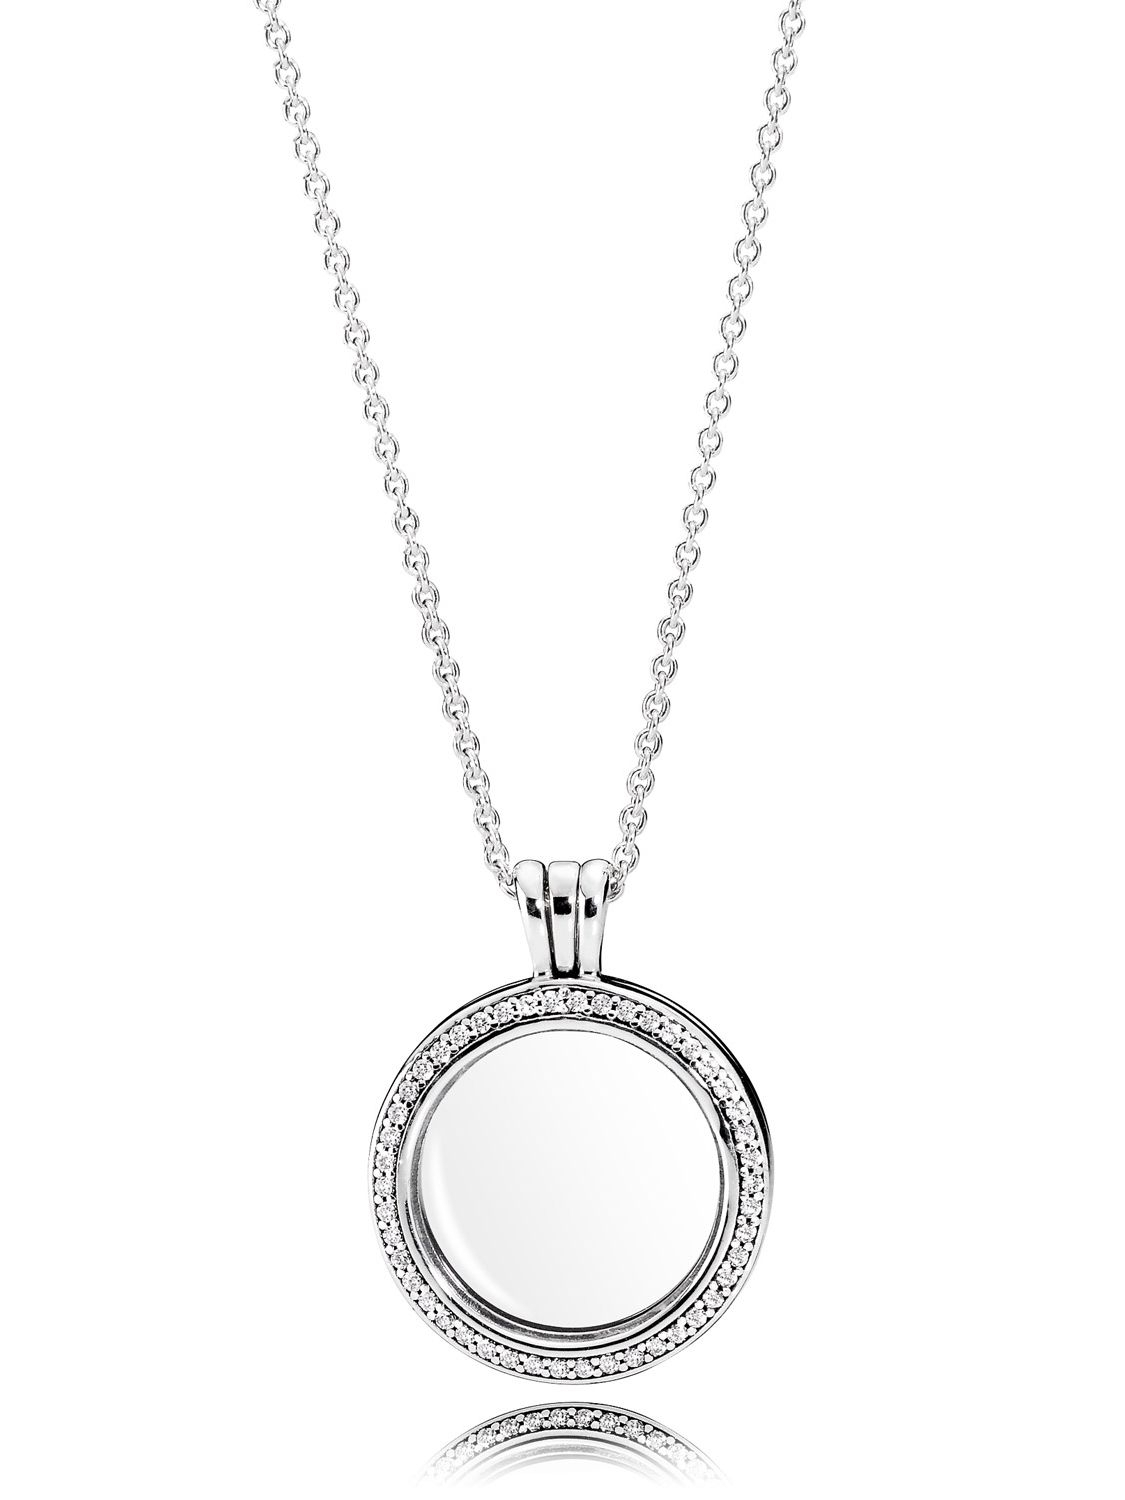 Pandora 396484cz 60 Sparkling Locket Necklace With Regard To Best And Newest Sparkling Gift Locket Element Necklaces (View 6 of 25)